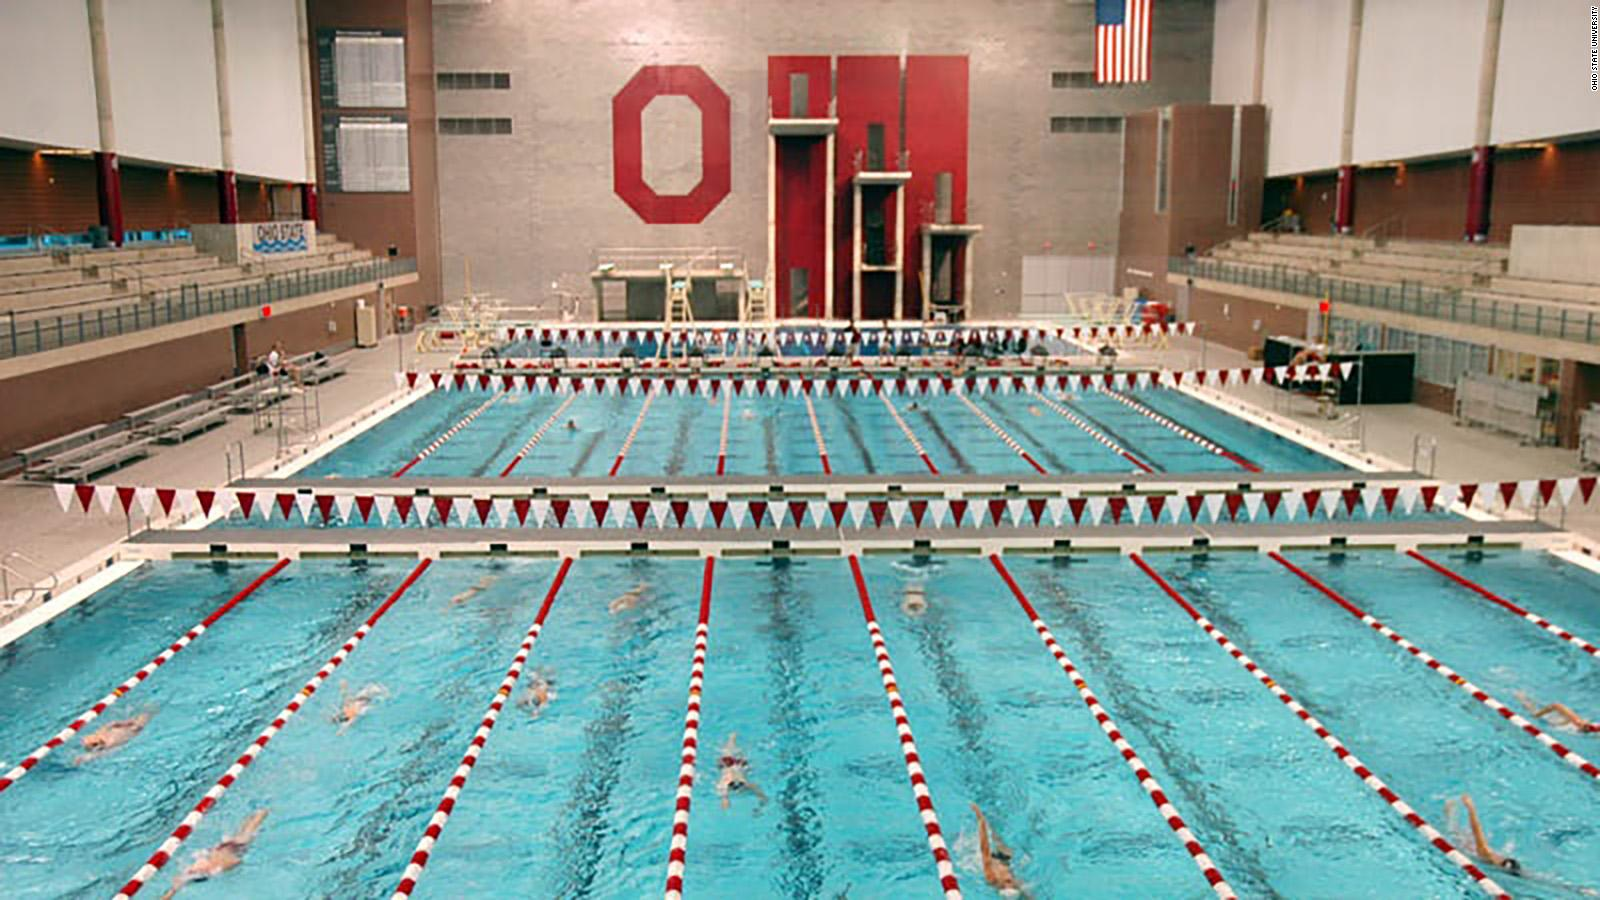 Ex-Ohio State divers file sexual abuse lawsuit